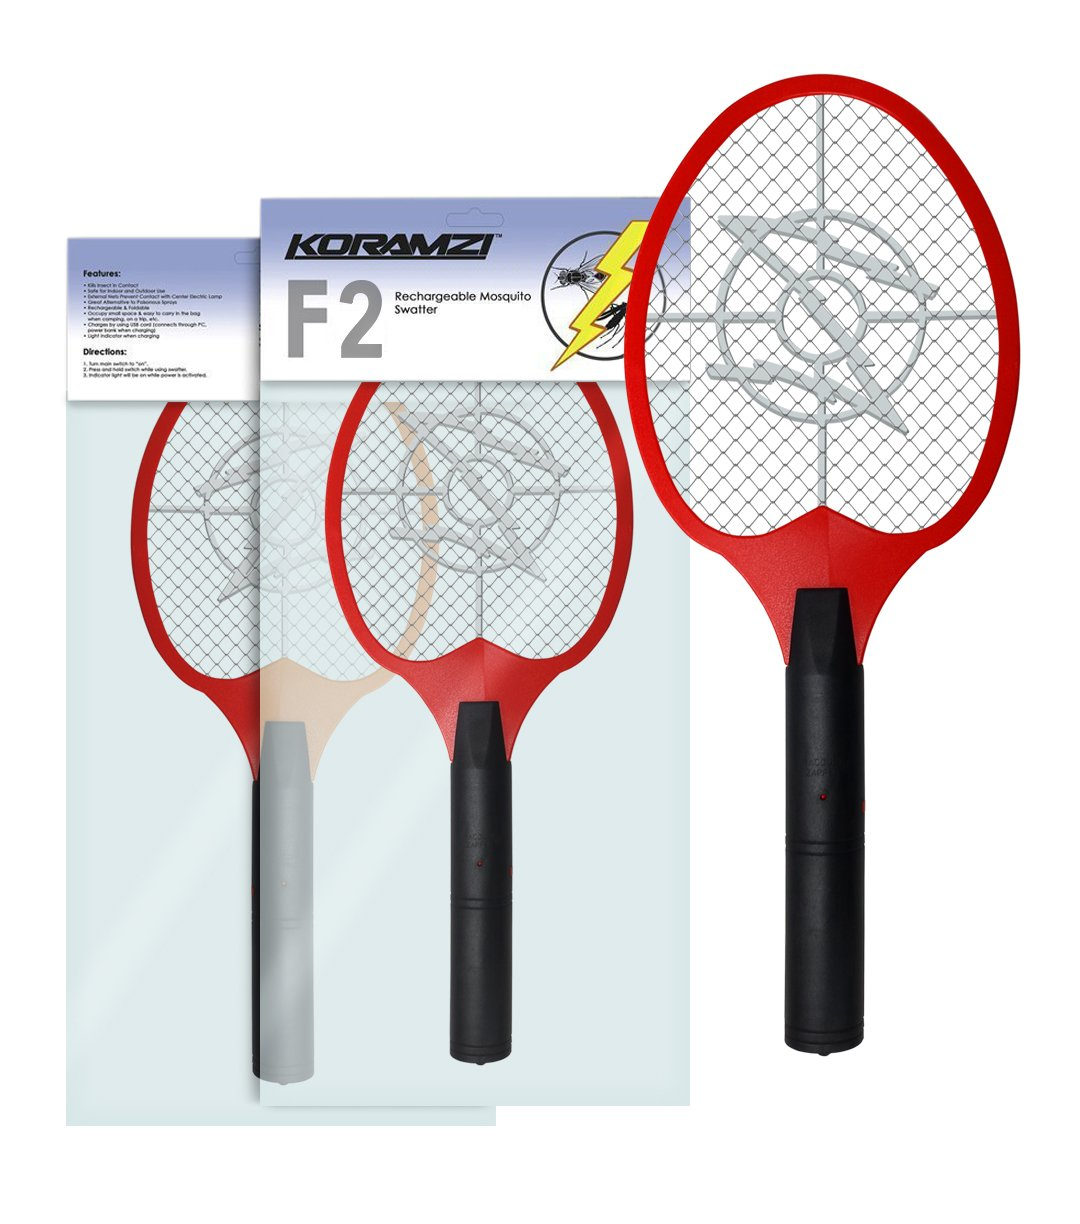 Koramzi Bug Zapper Racket Fly Swatter Mosquito Killer Zap Mosquito Best for Indoor and Outdoor Pest Control F2 (Red)